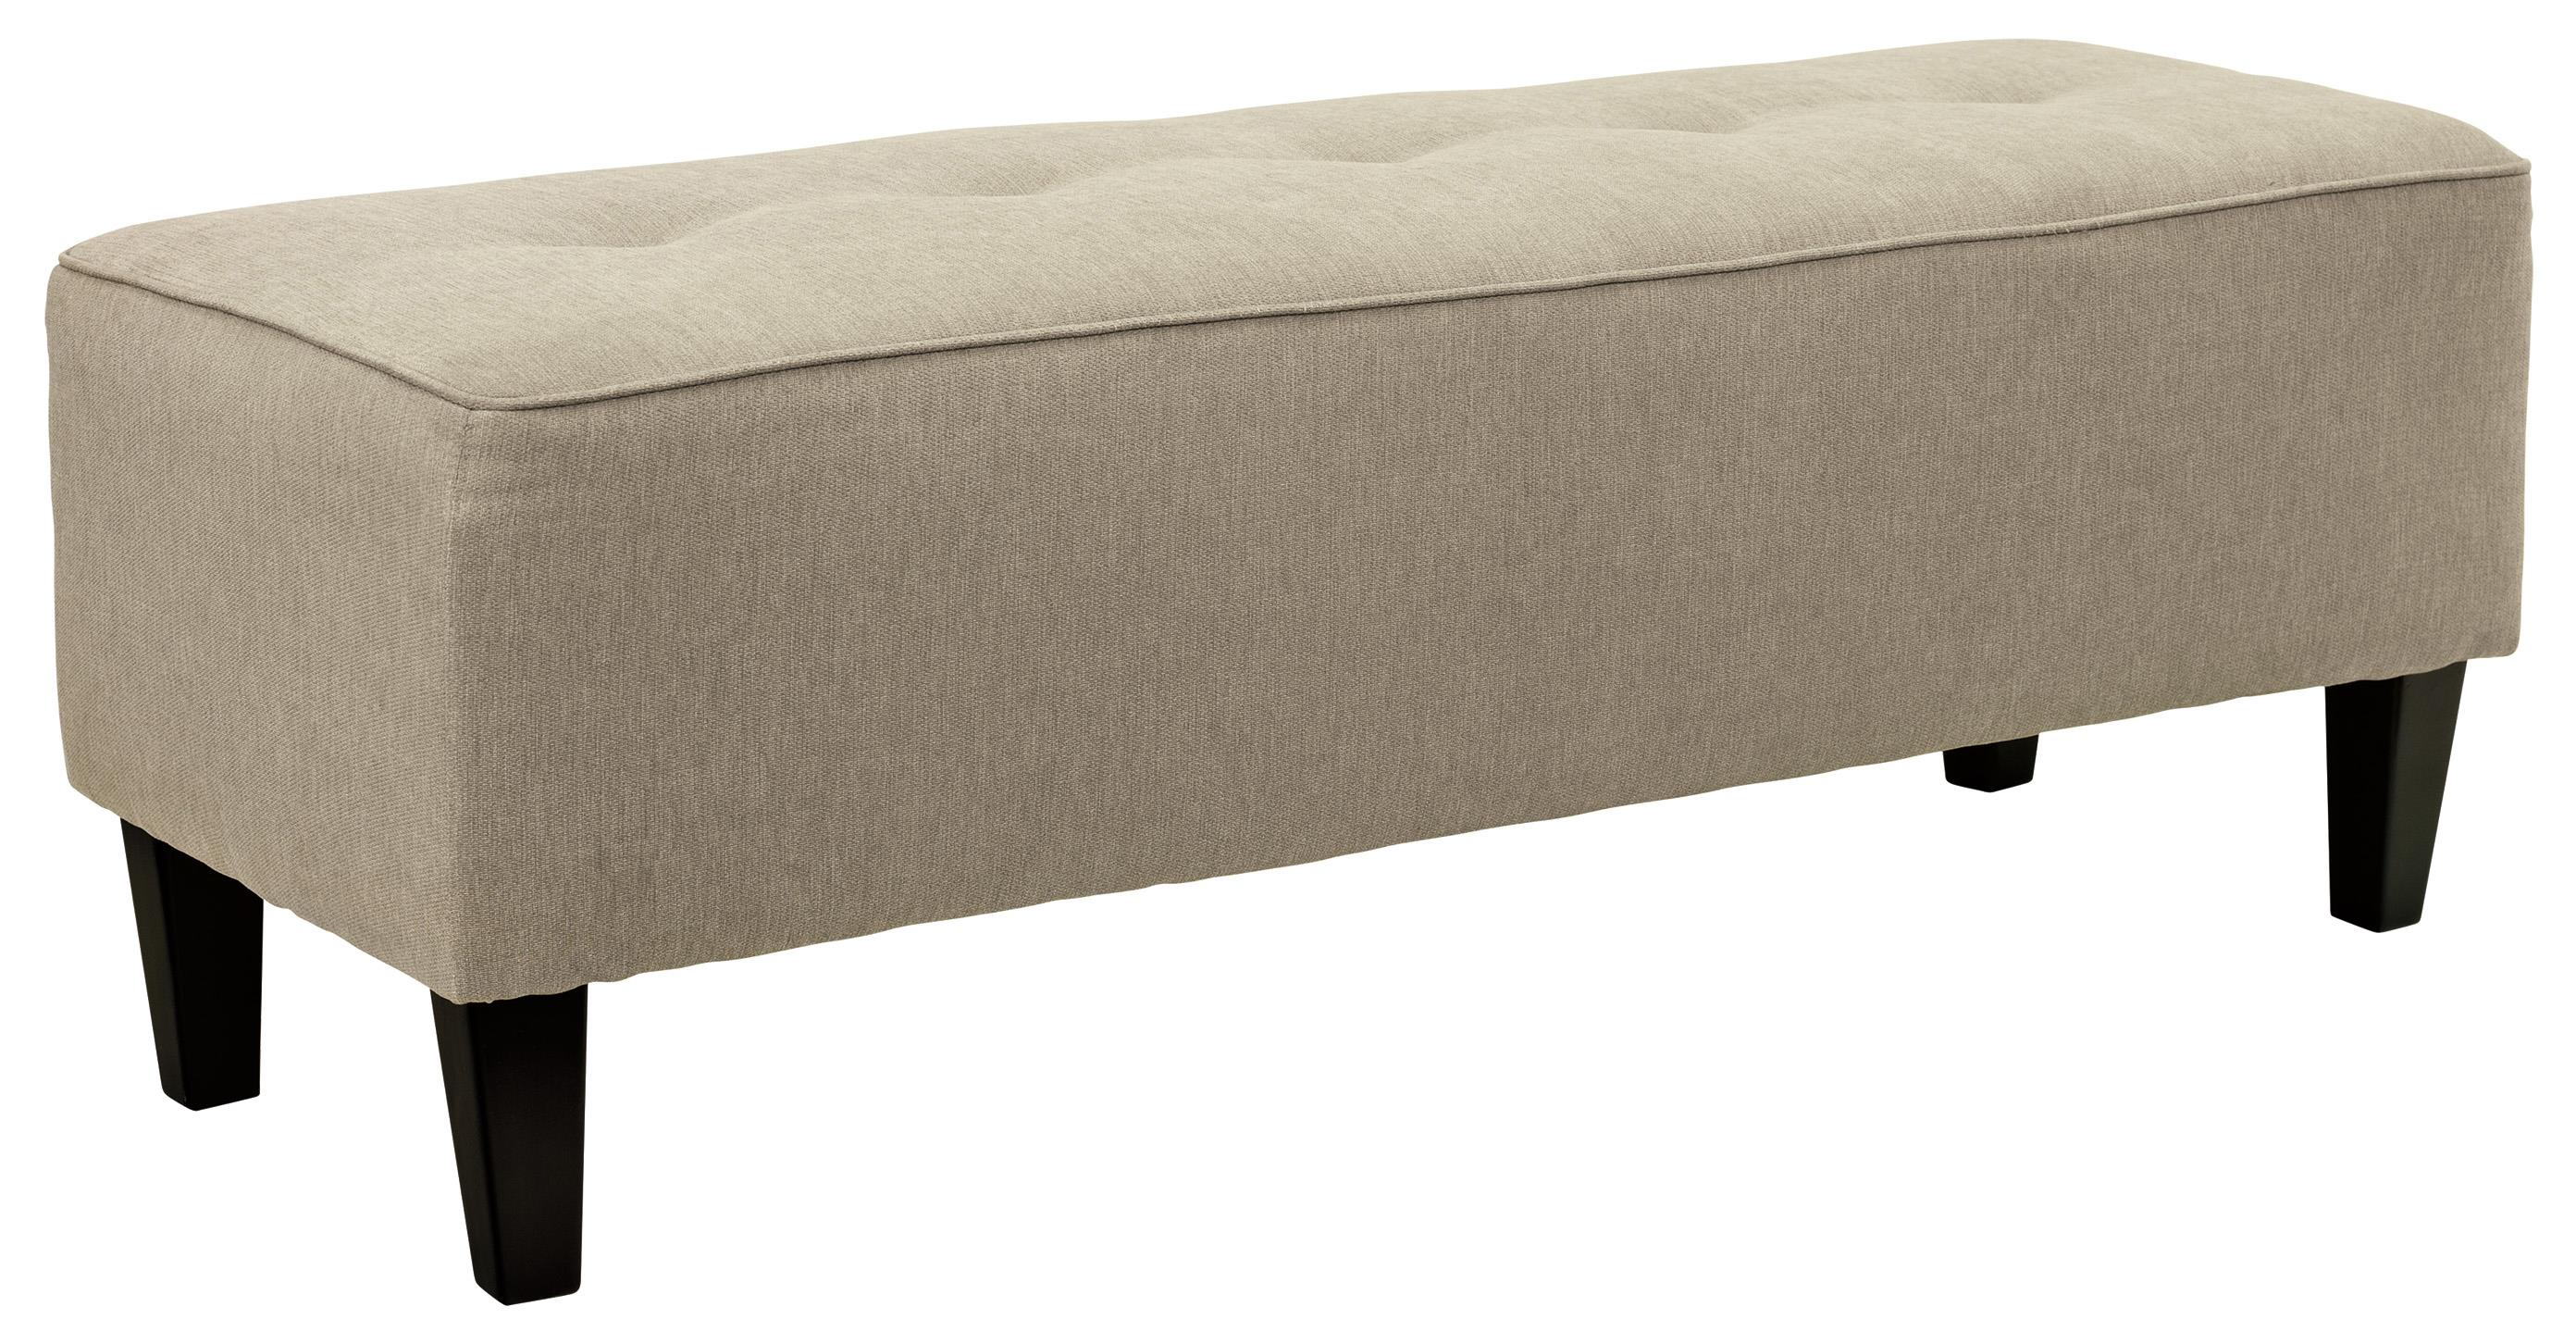 Signature Design by Ashley Sinko Oversized Accent Ottoman - Item Number: 2810108